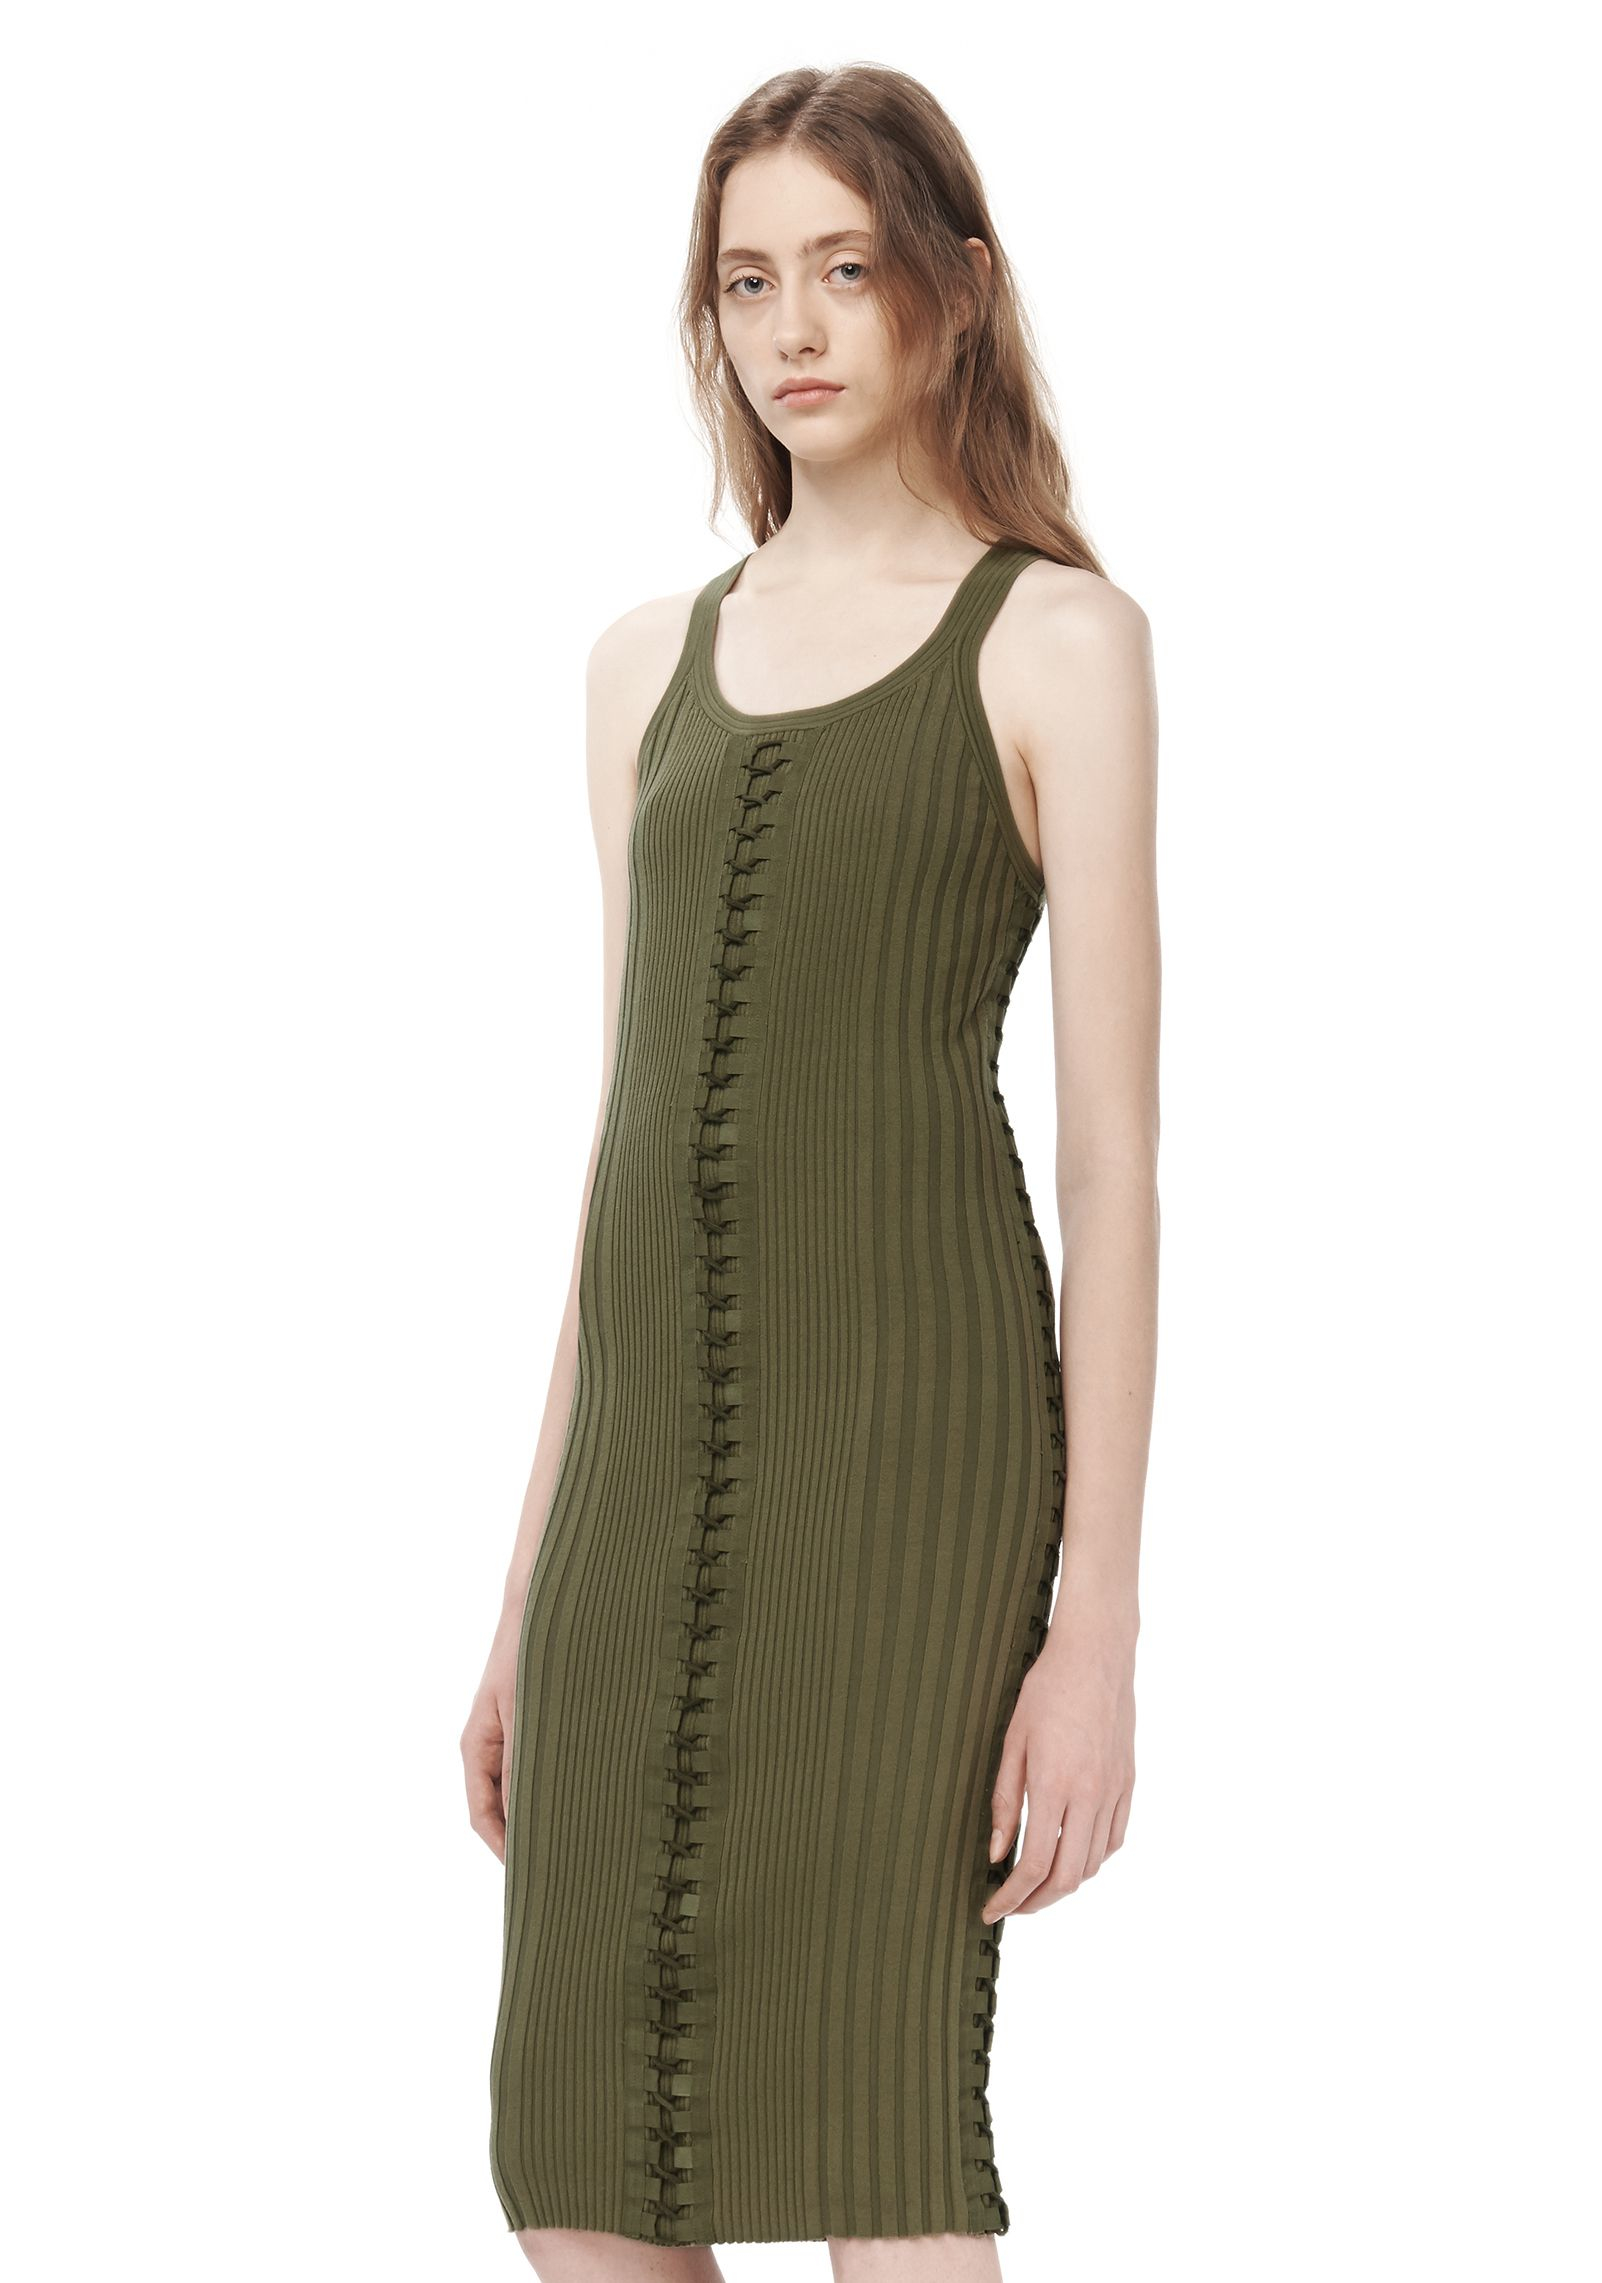 Lyst Alexander Wang Rib Cotton Tank Dress In Green